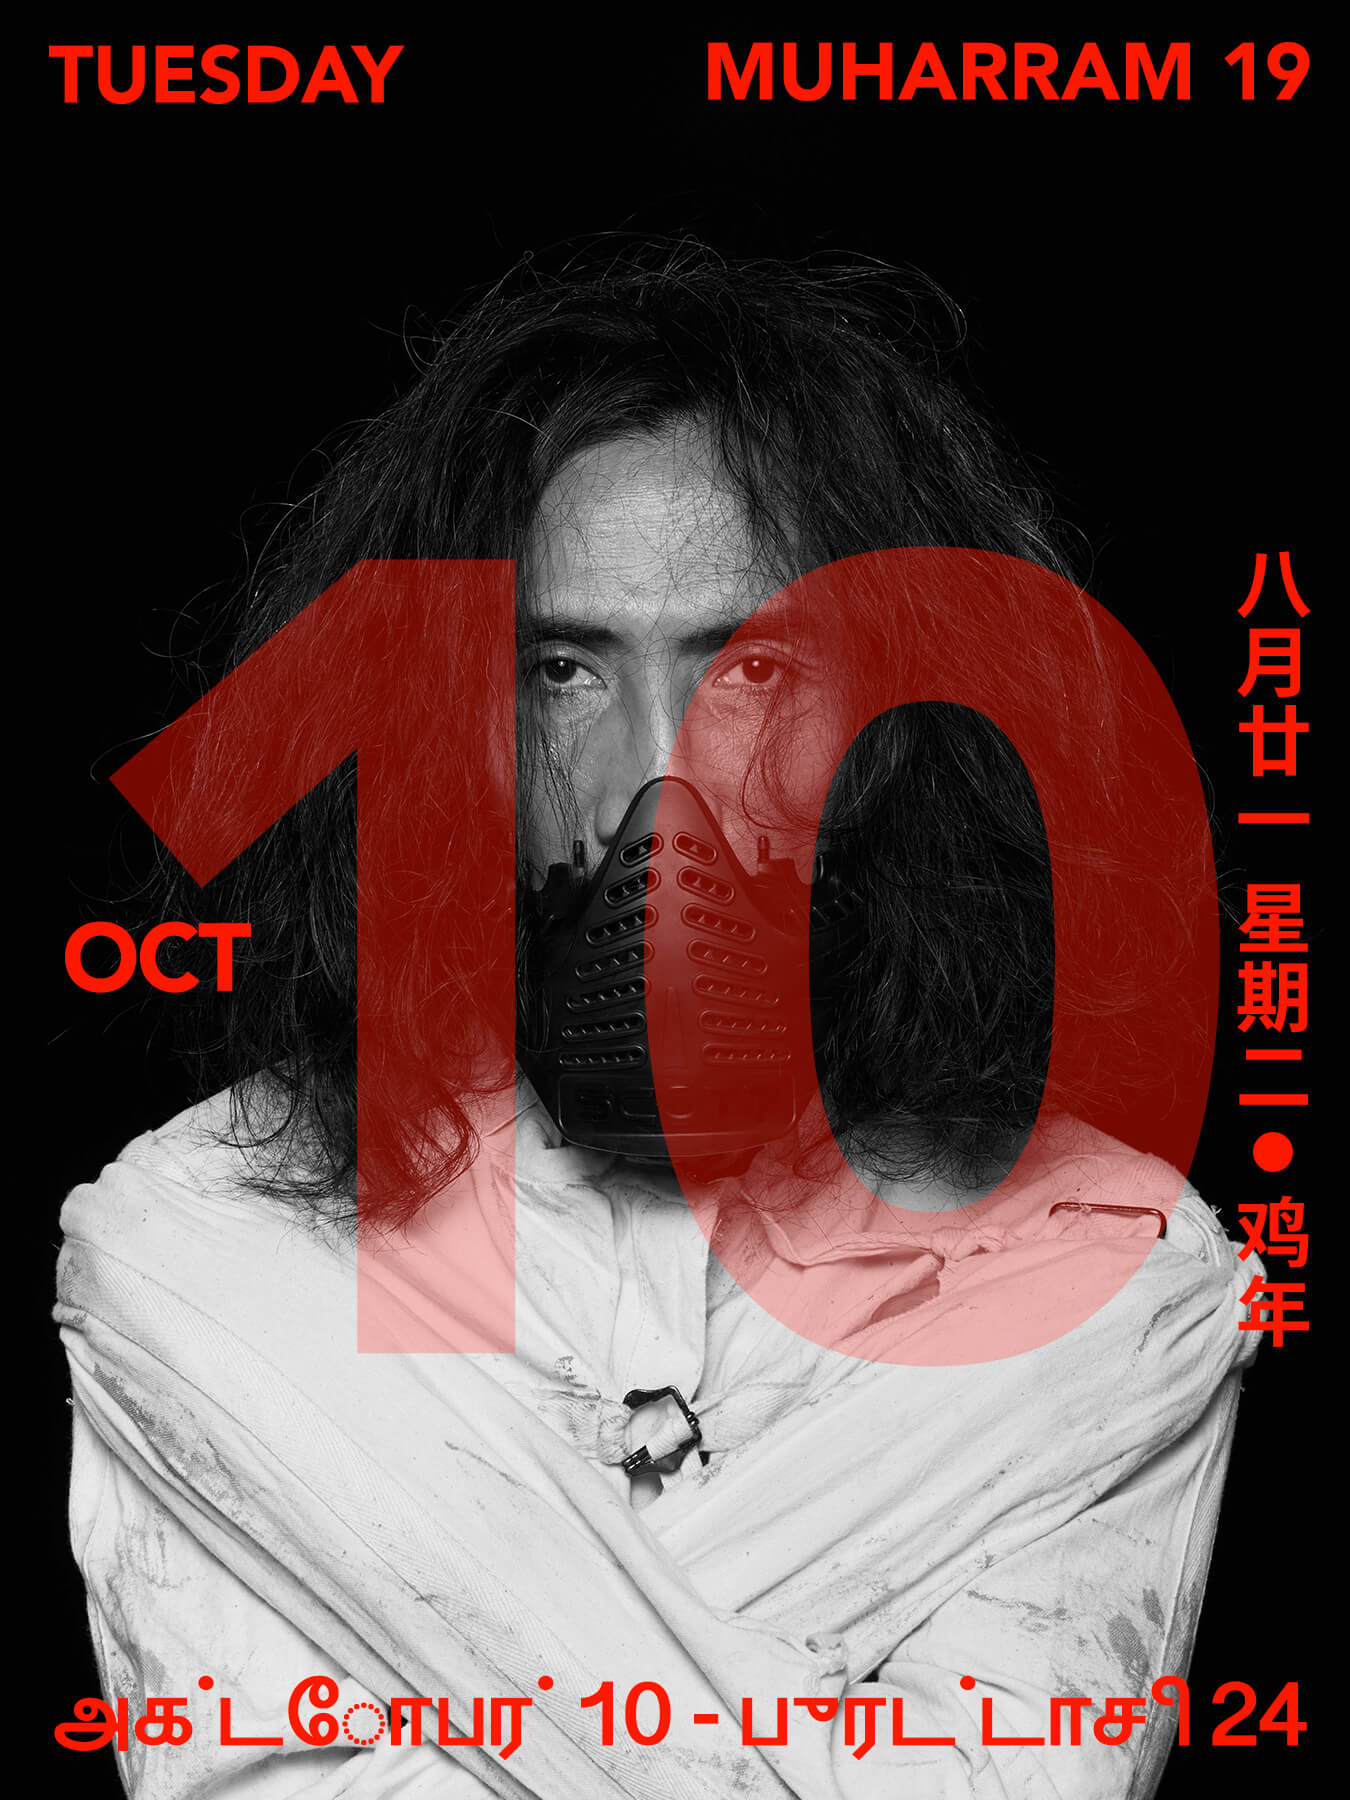 10 Oct 2017 World Mental Health Day: Derong is photographed in a straight jacket and muzzle